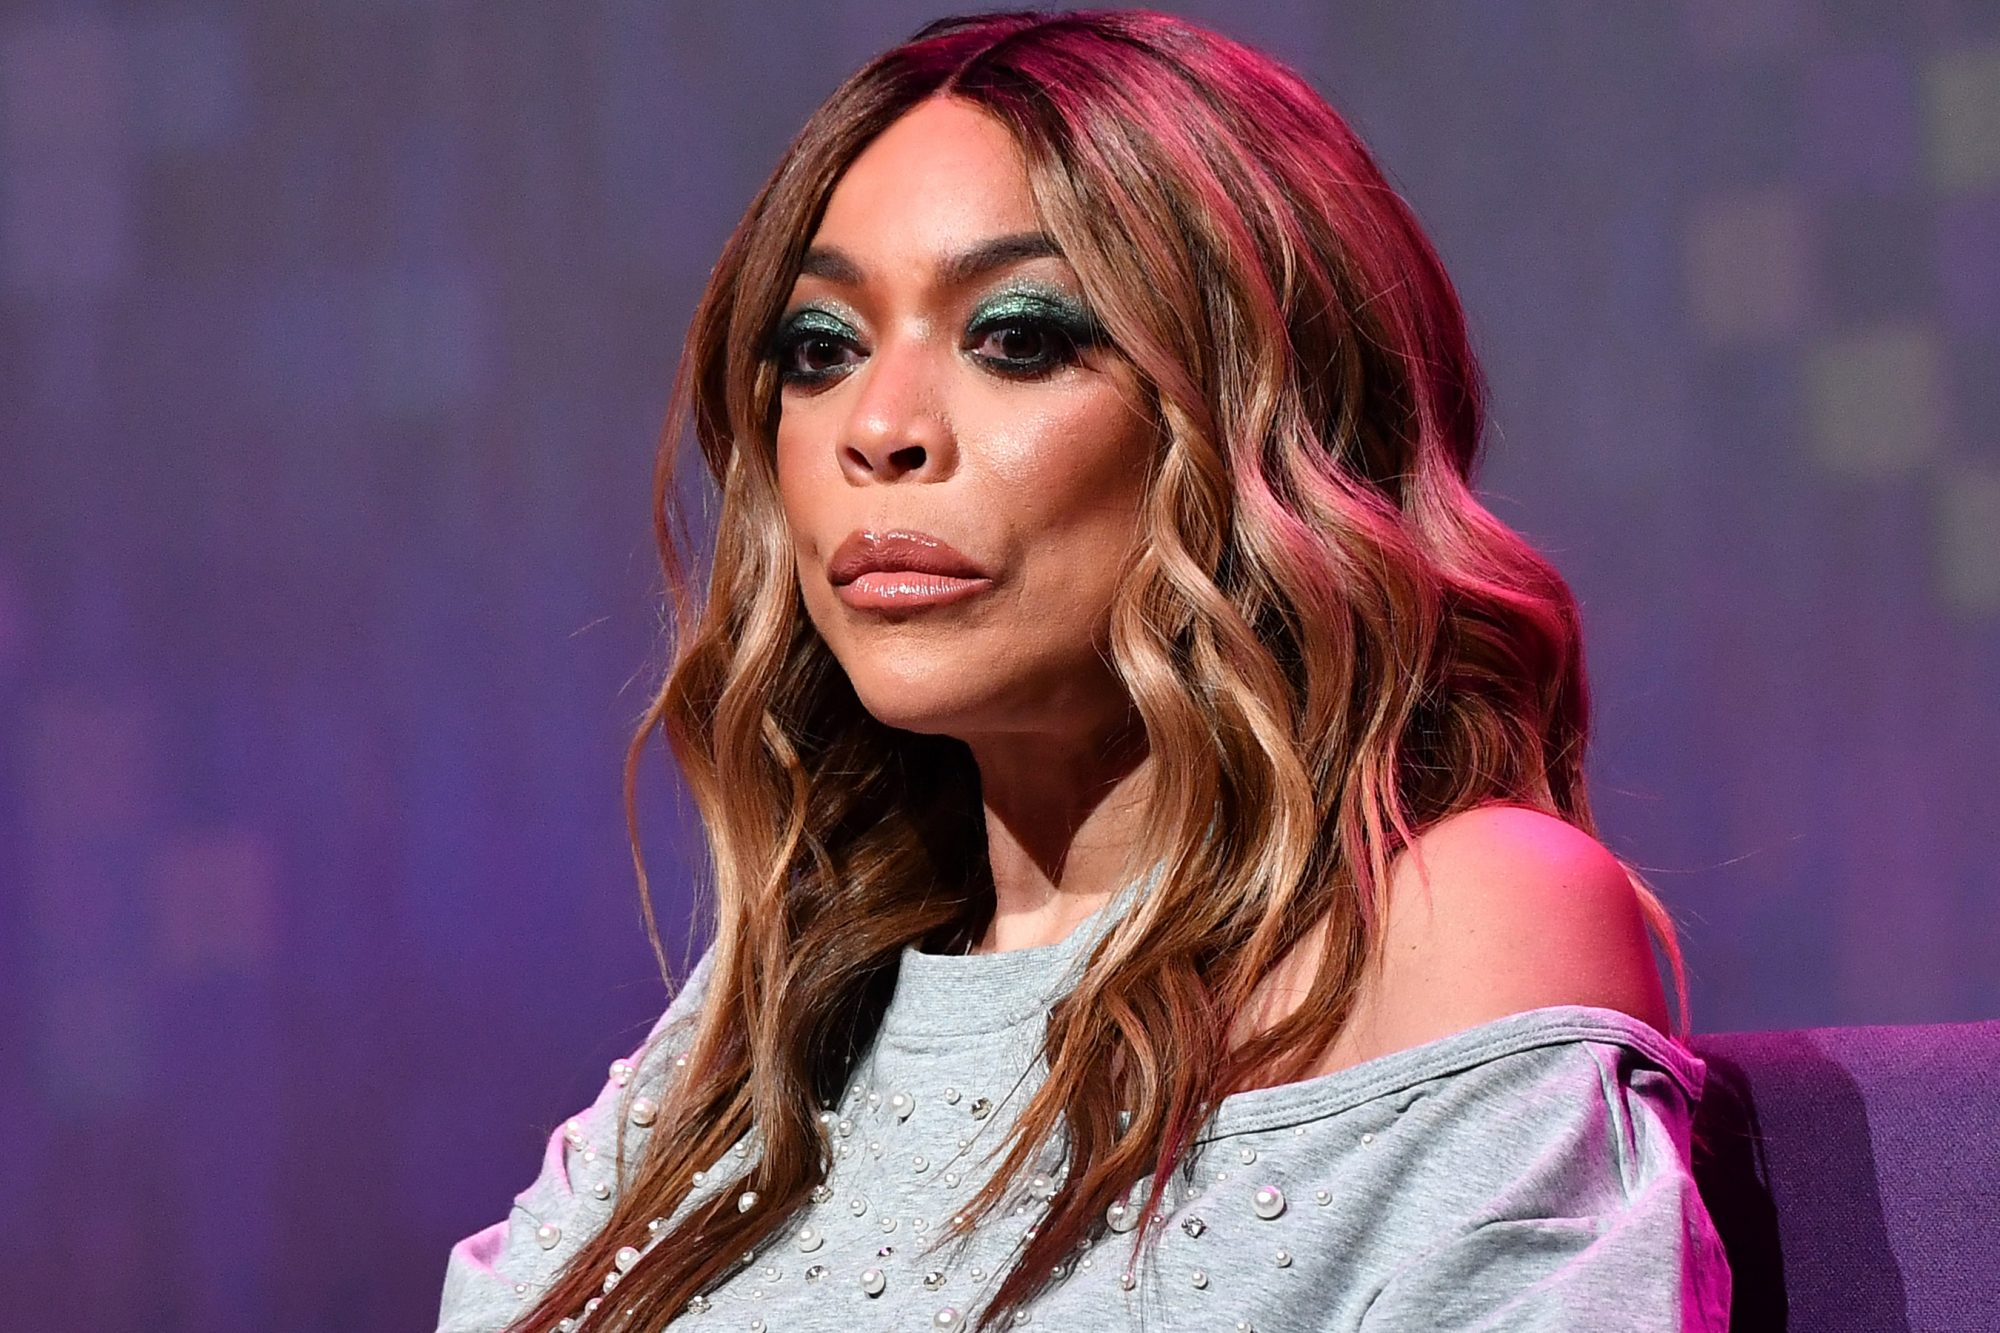 Wendy Williams Resurfaces On Social Media With Her Son After The Passing Of Her Mother